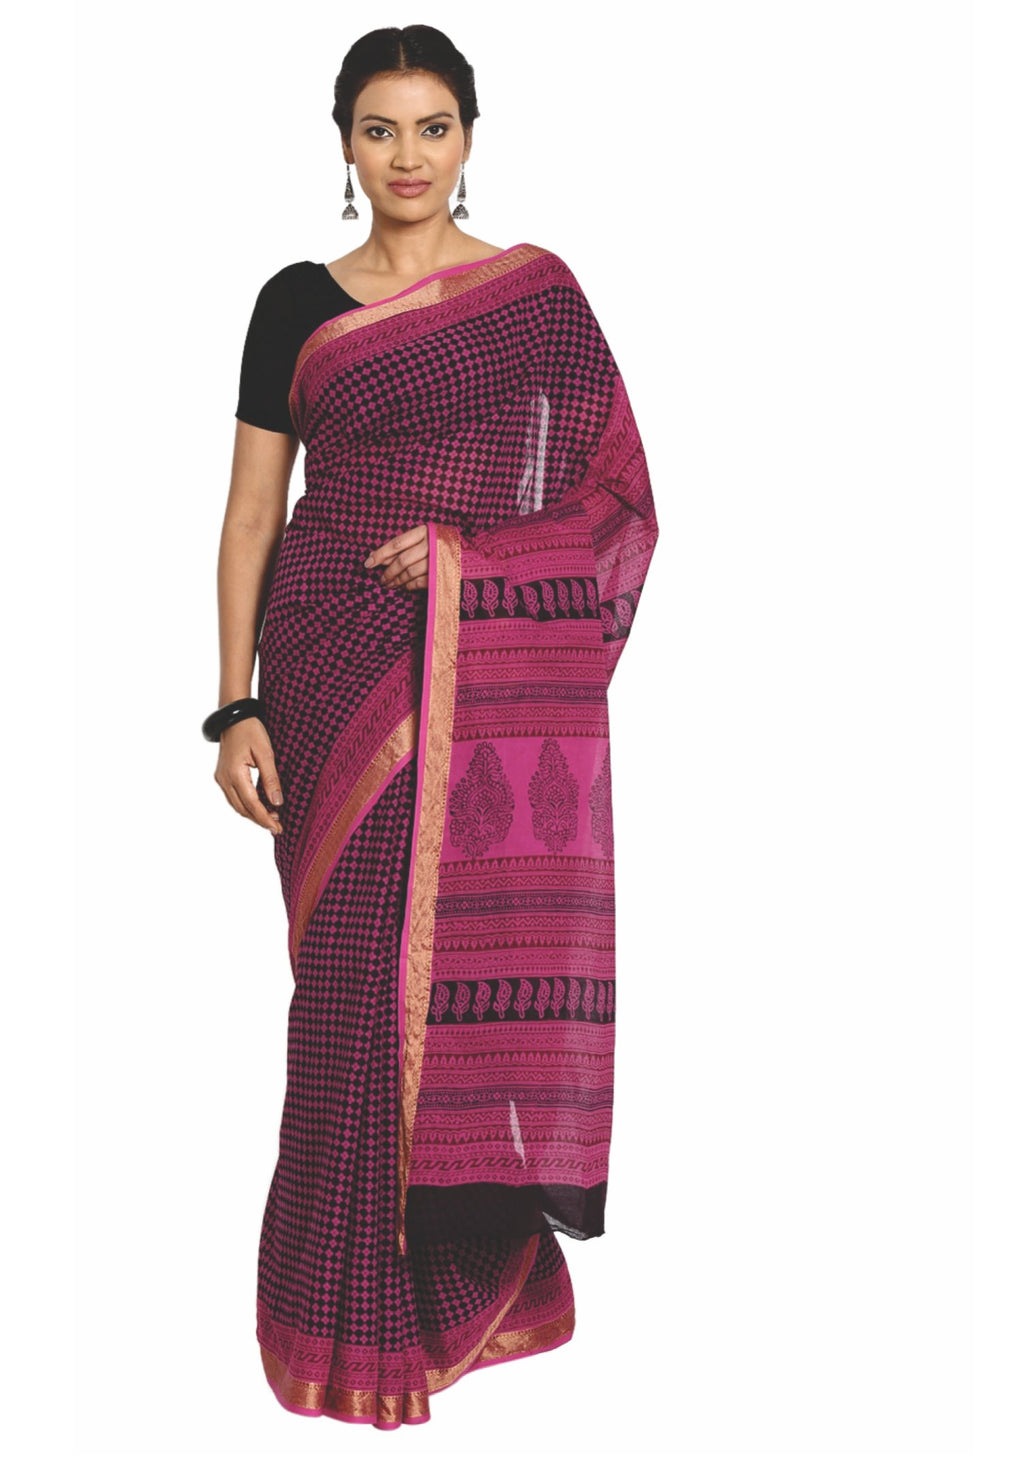 Magenta Cotton Hand Block Bagh Print Handcrafted Saree-Saree-Kalakari India-ZIBASA0078-Bagh, Cotton, Geographical Indication, Hand Blocks, Hand Crafted, Heritage Prints, Natural Dyes, Sarees, Sustainable Fabrics-[Linen,Ethnic,wear,Fashionista,Handloom,Handicraft,Indigo,blockprint,block,print,Cotton,Chanderi,Blue, latest,classy,party,bollywood,trendy,summer,style,traditional,formal,elegant,unique,style,hand,block,print, dabu,booti,gift,present,glamorous,affordable,collectible,Sari,Saree,printed,